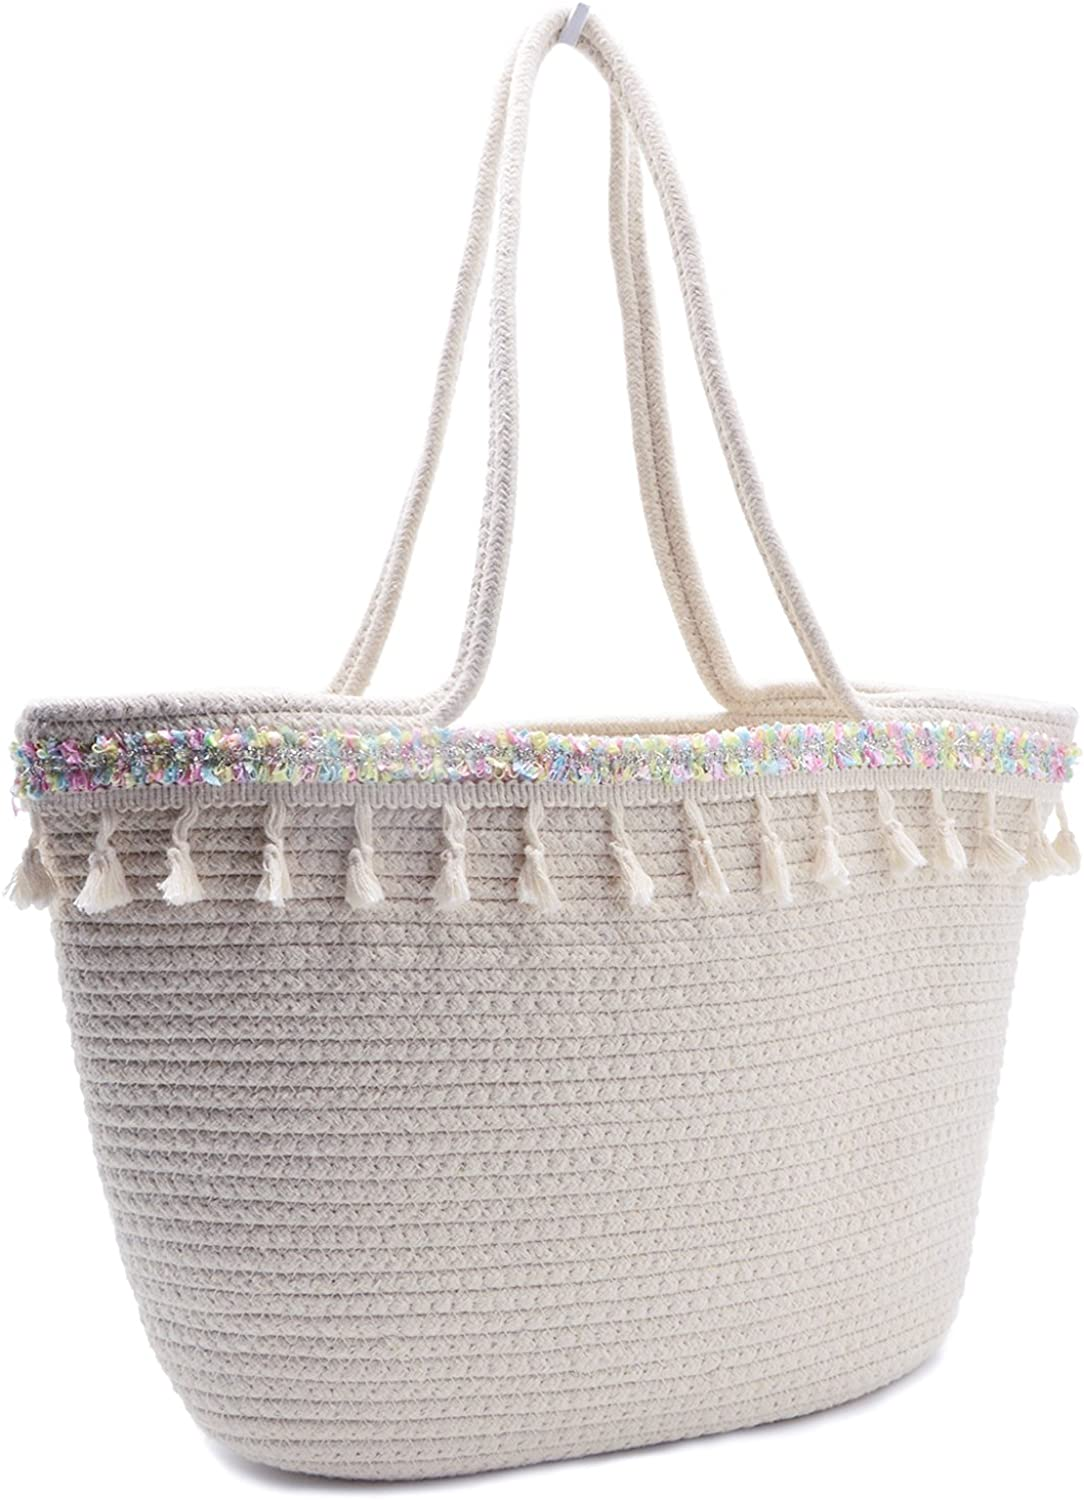 Beach Tote Bag Handmade Cotton Woven Travel Tote Tassels Shoulder Bag for Women (Style 05)